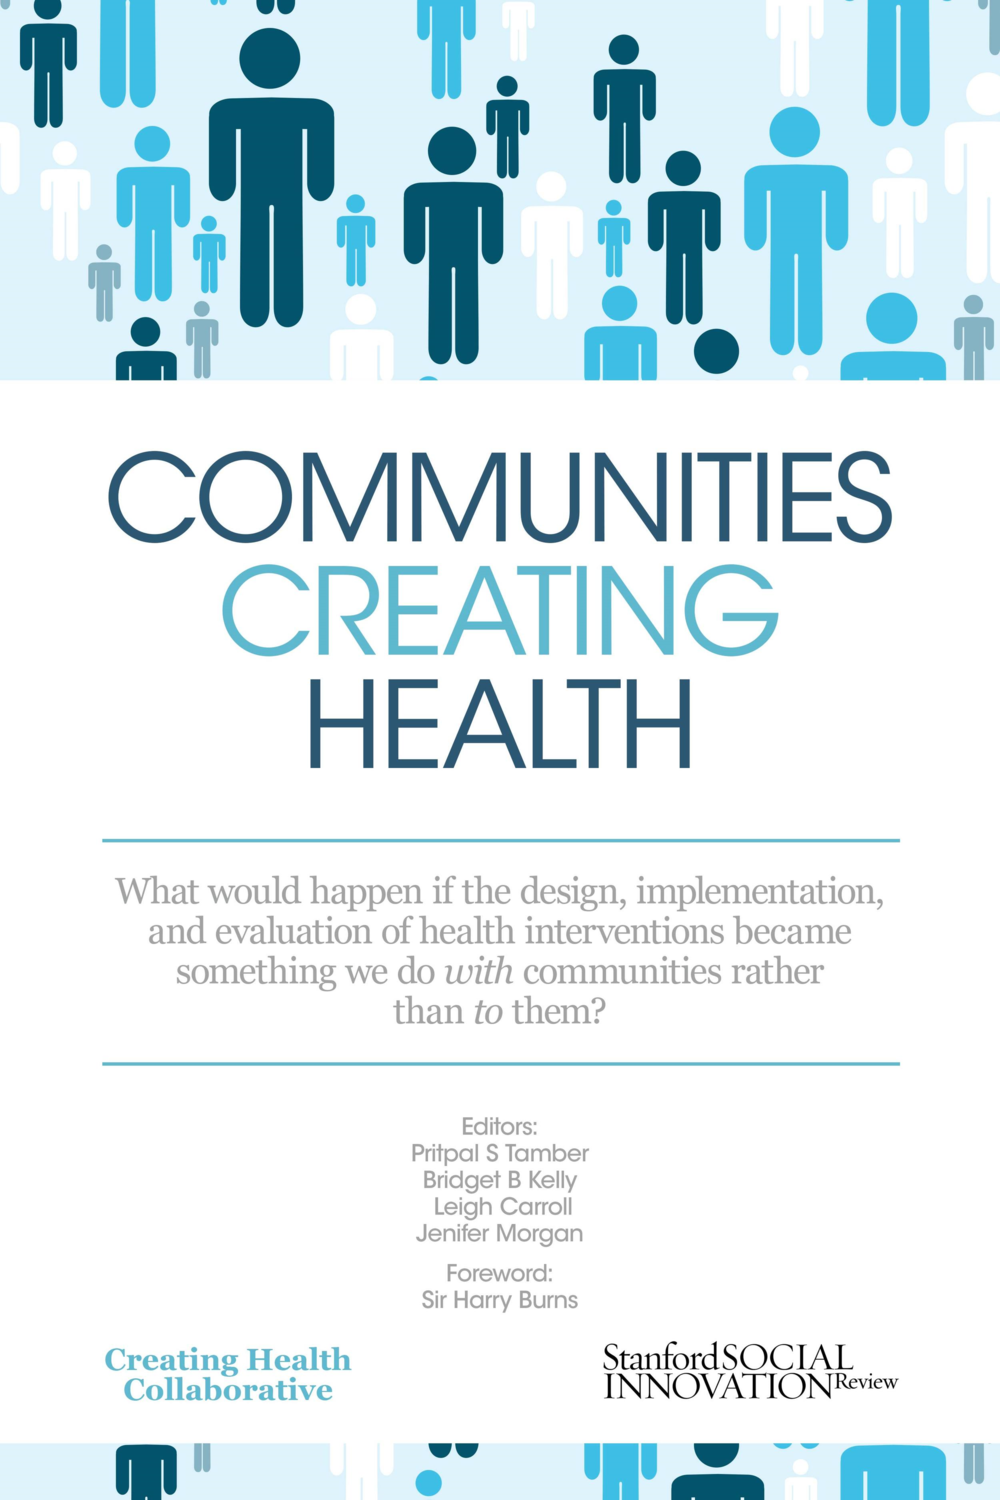 20150908 Communities-Creating-Health-Cover-Design_4p.jpg